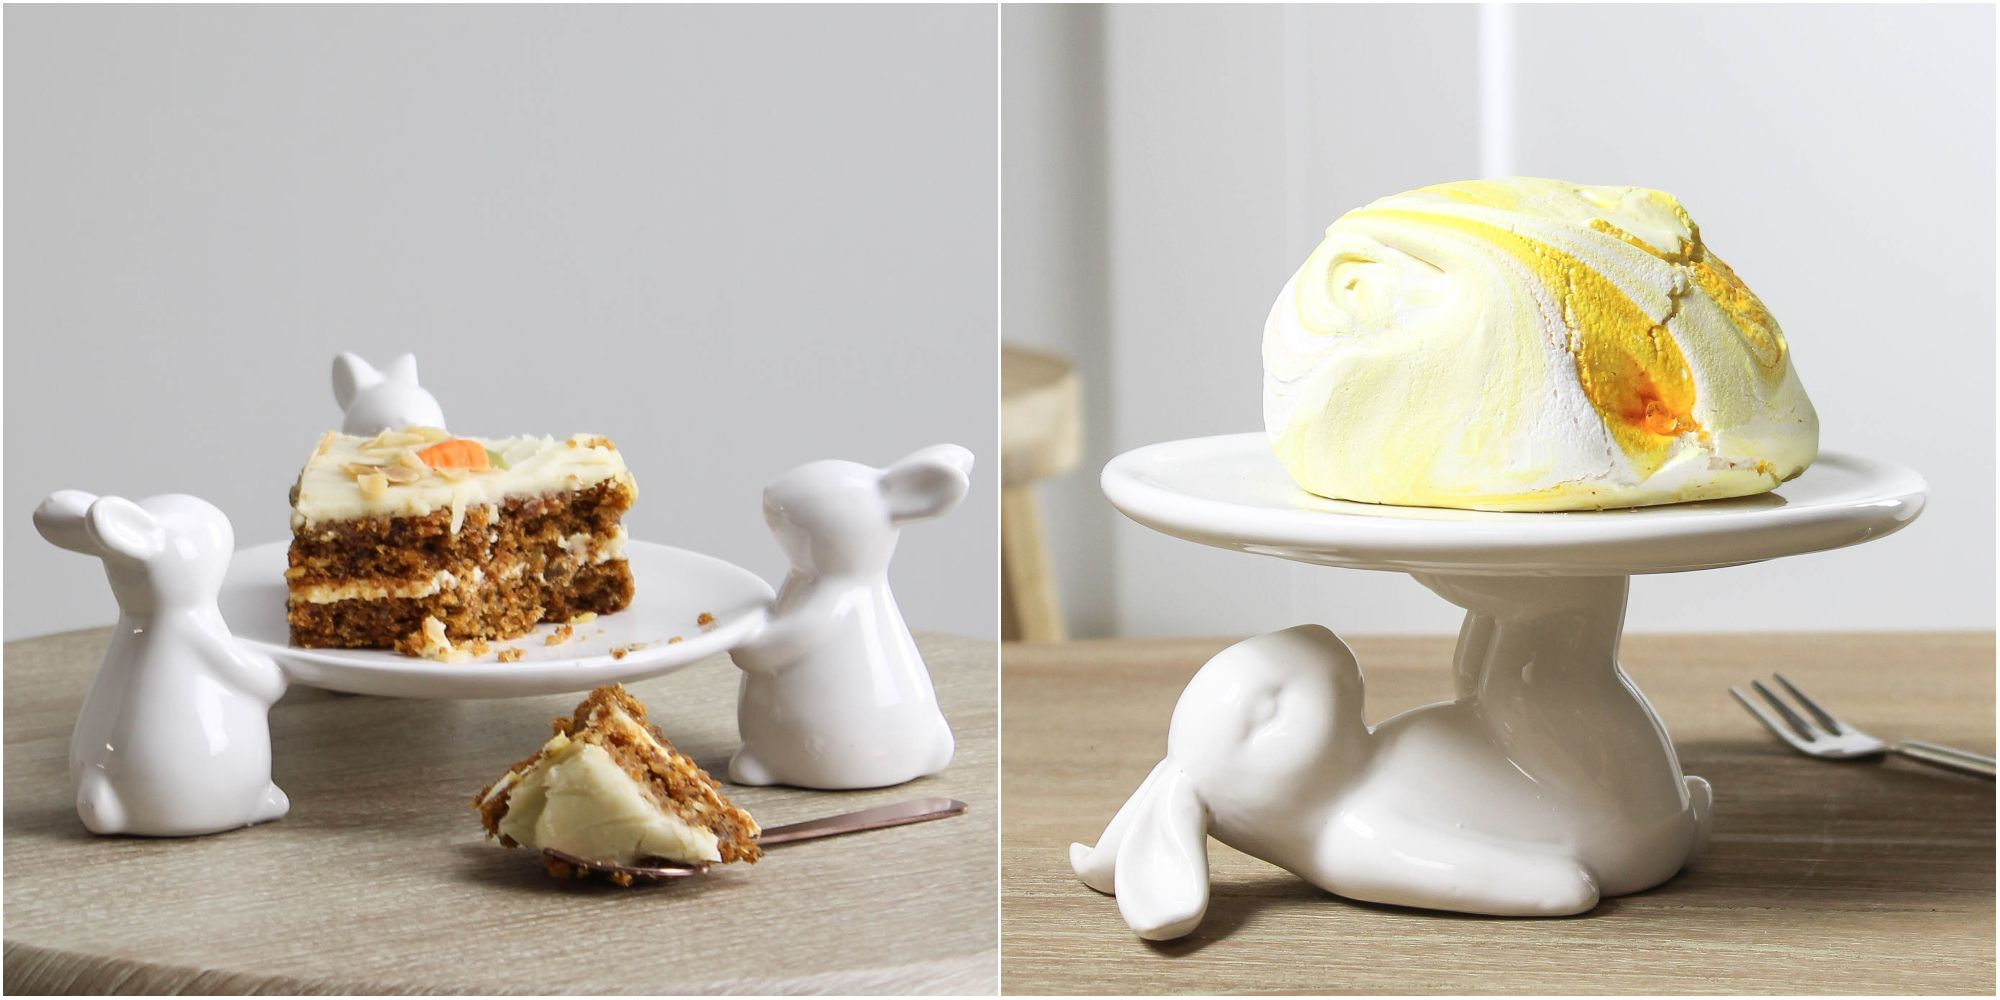 These rabbit-themed cake stands are perfect for Easter